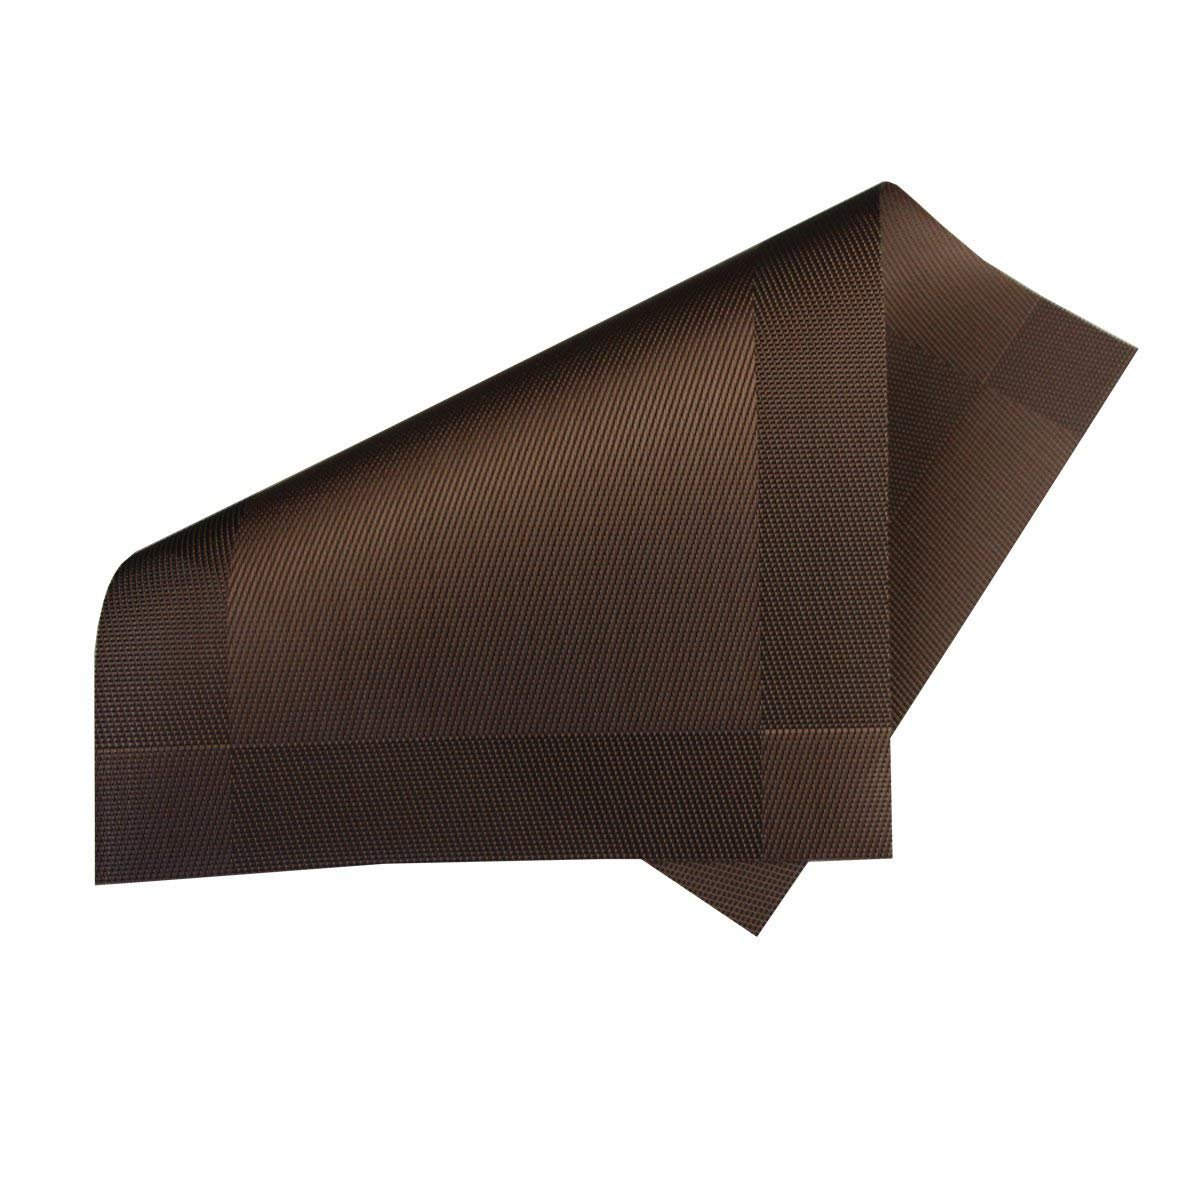 Xugoly Vinyl Table Mats, 1812 inch, Brown by Xugoly (Image #2)